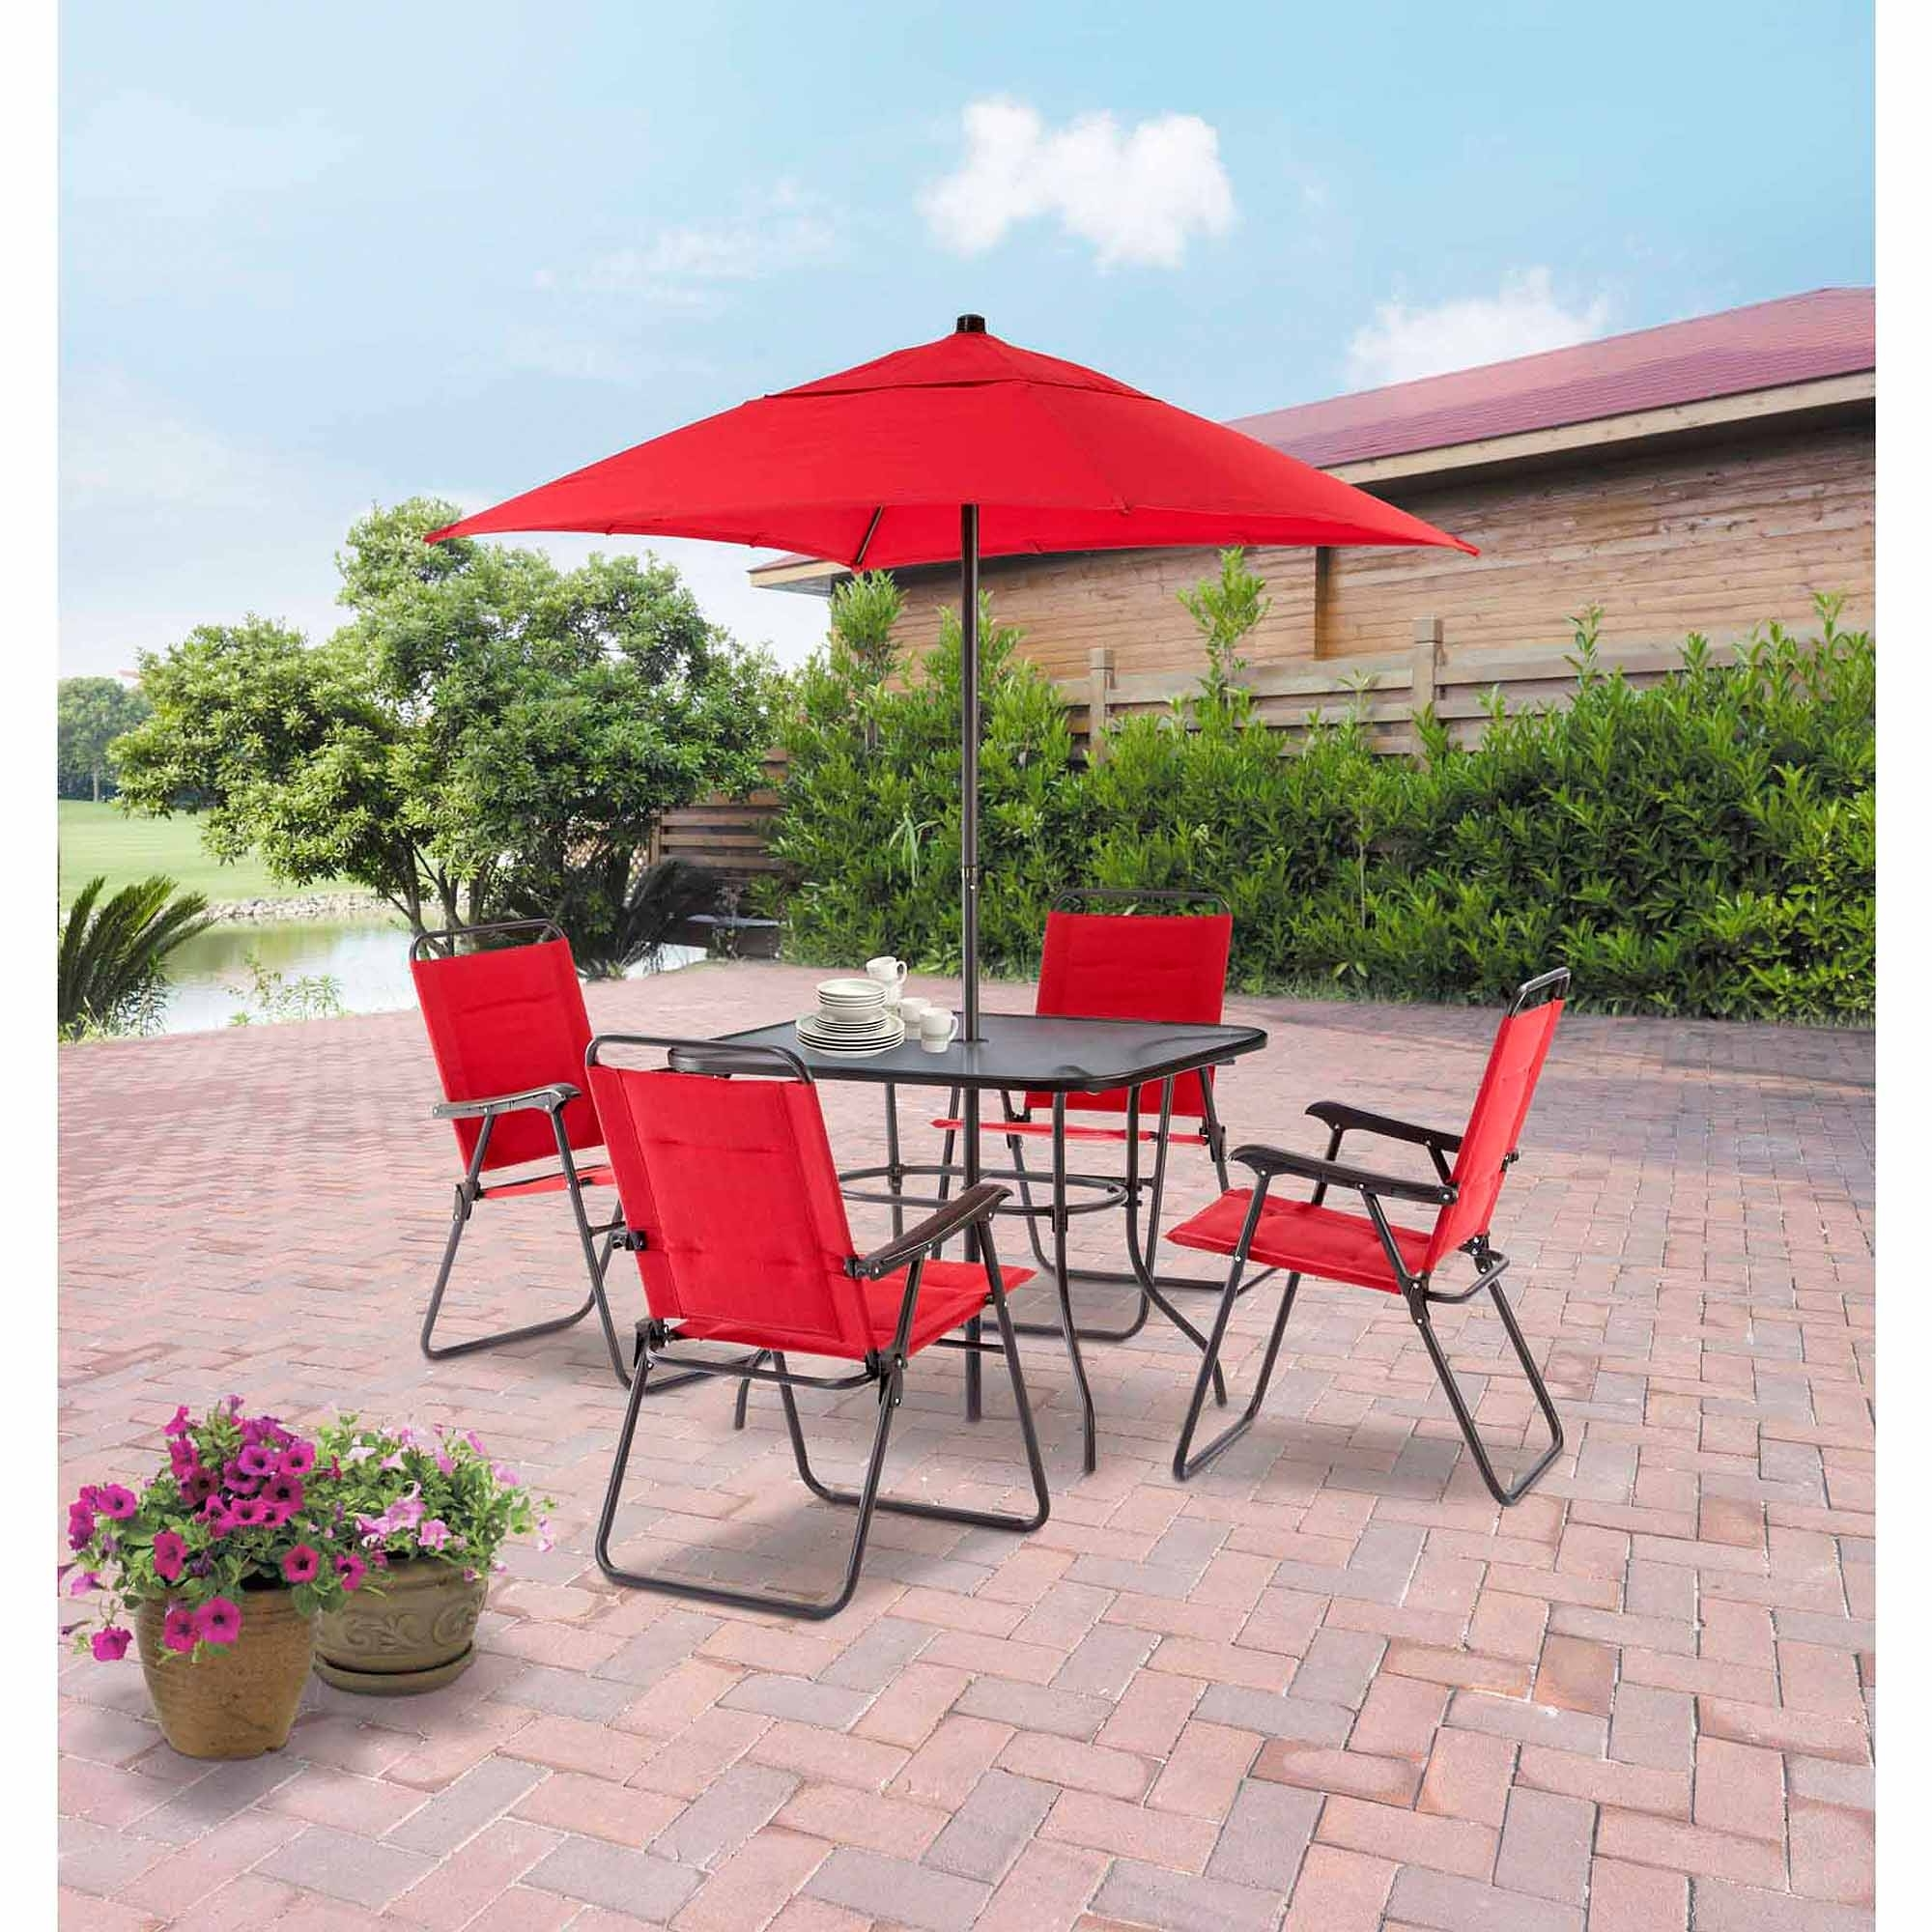 Decorating: Lovely Kmart Patio Cushions For Comfortable Furniture Pertaining To Well Known Sunbrella Patio Umbrellas At Walmart (Gallery 14 of 20)